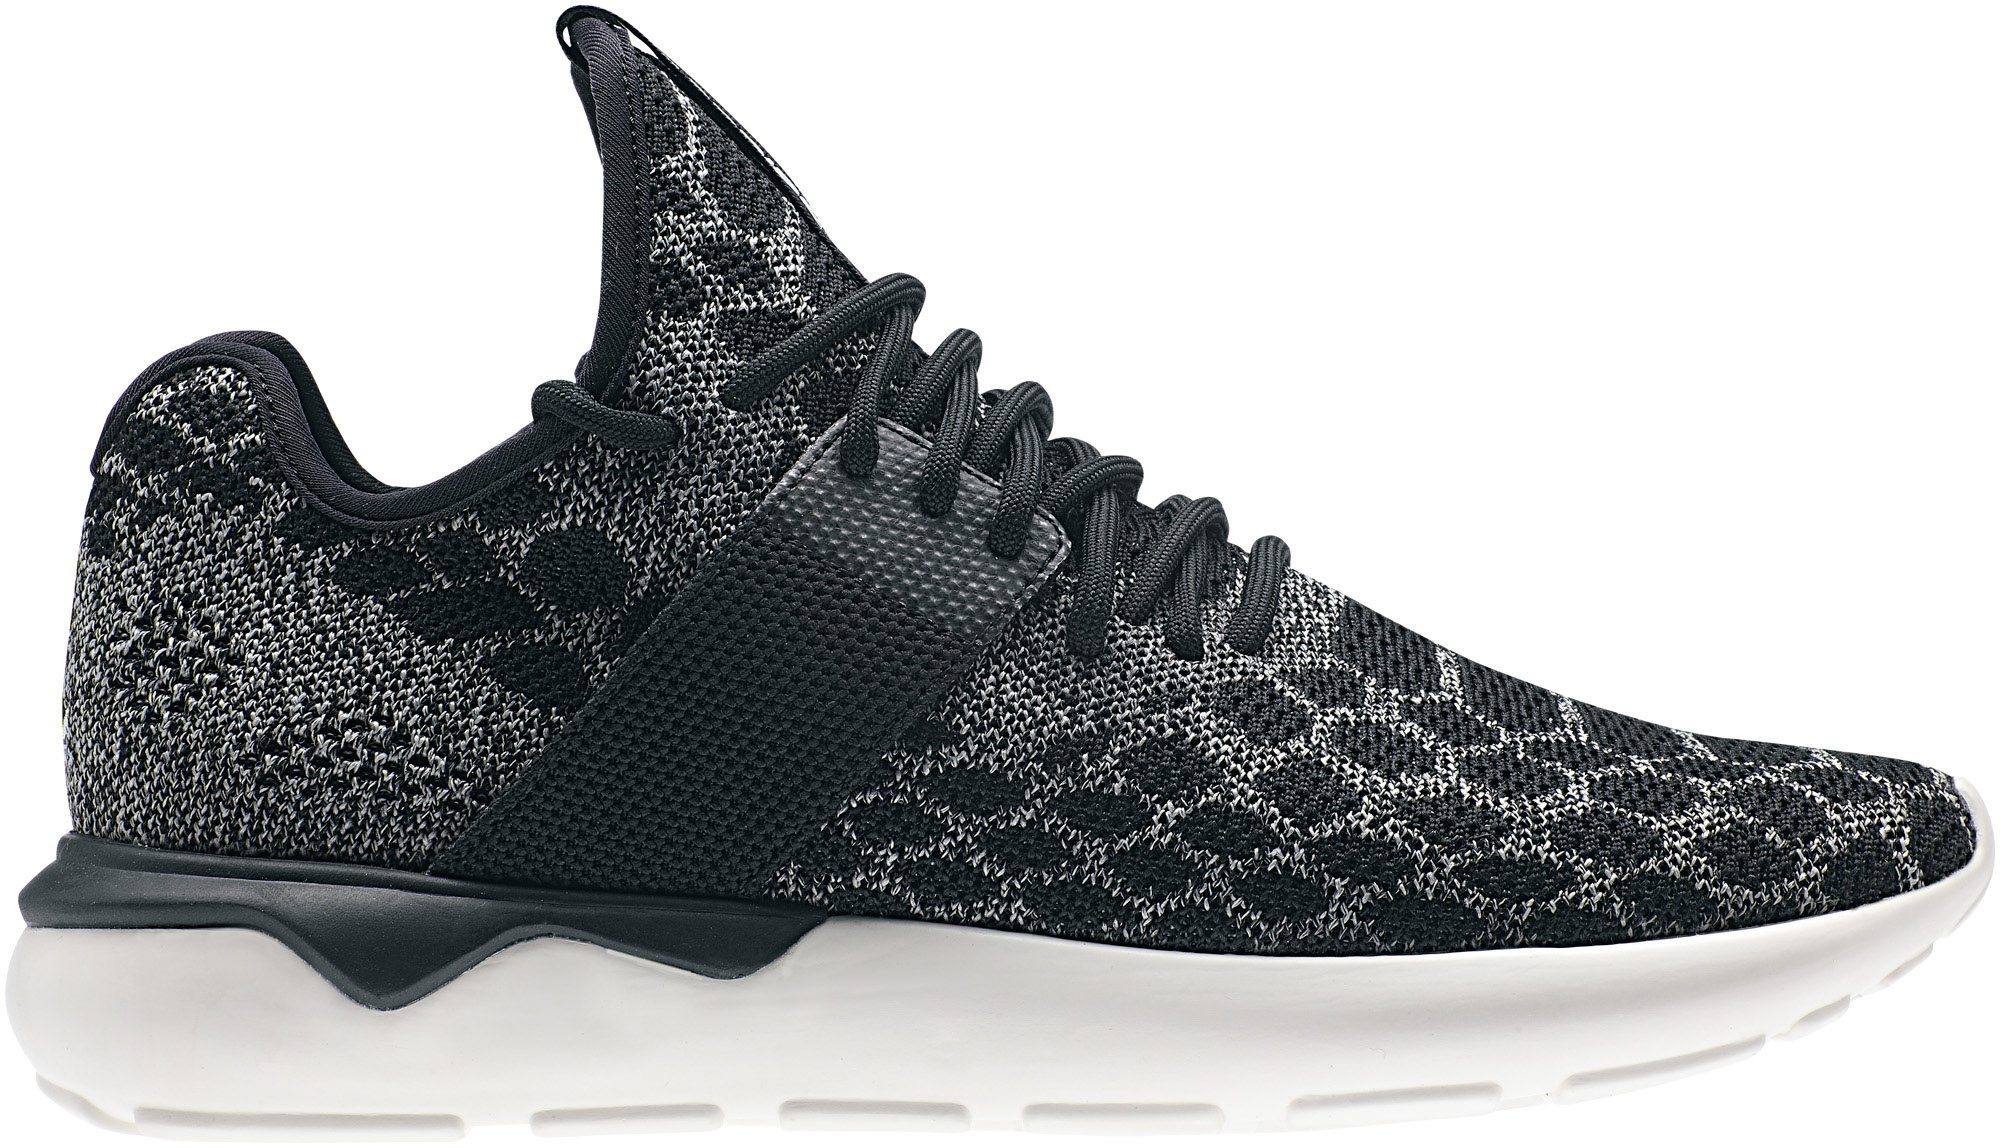 ᐅ adidas Originals Tubular Runner Primeknit